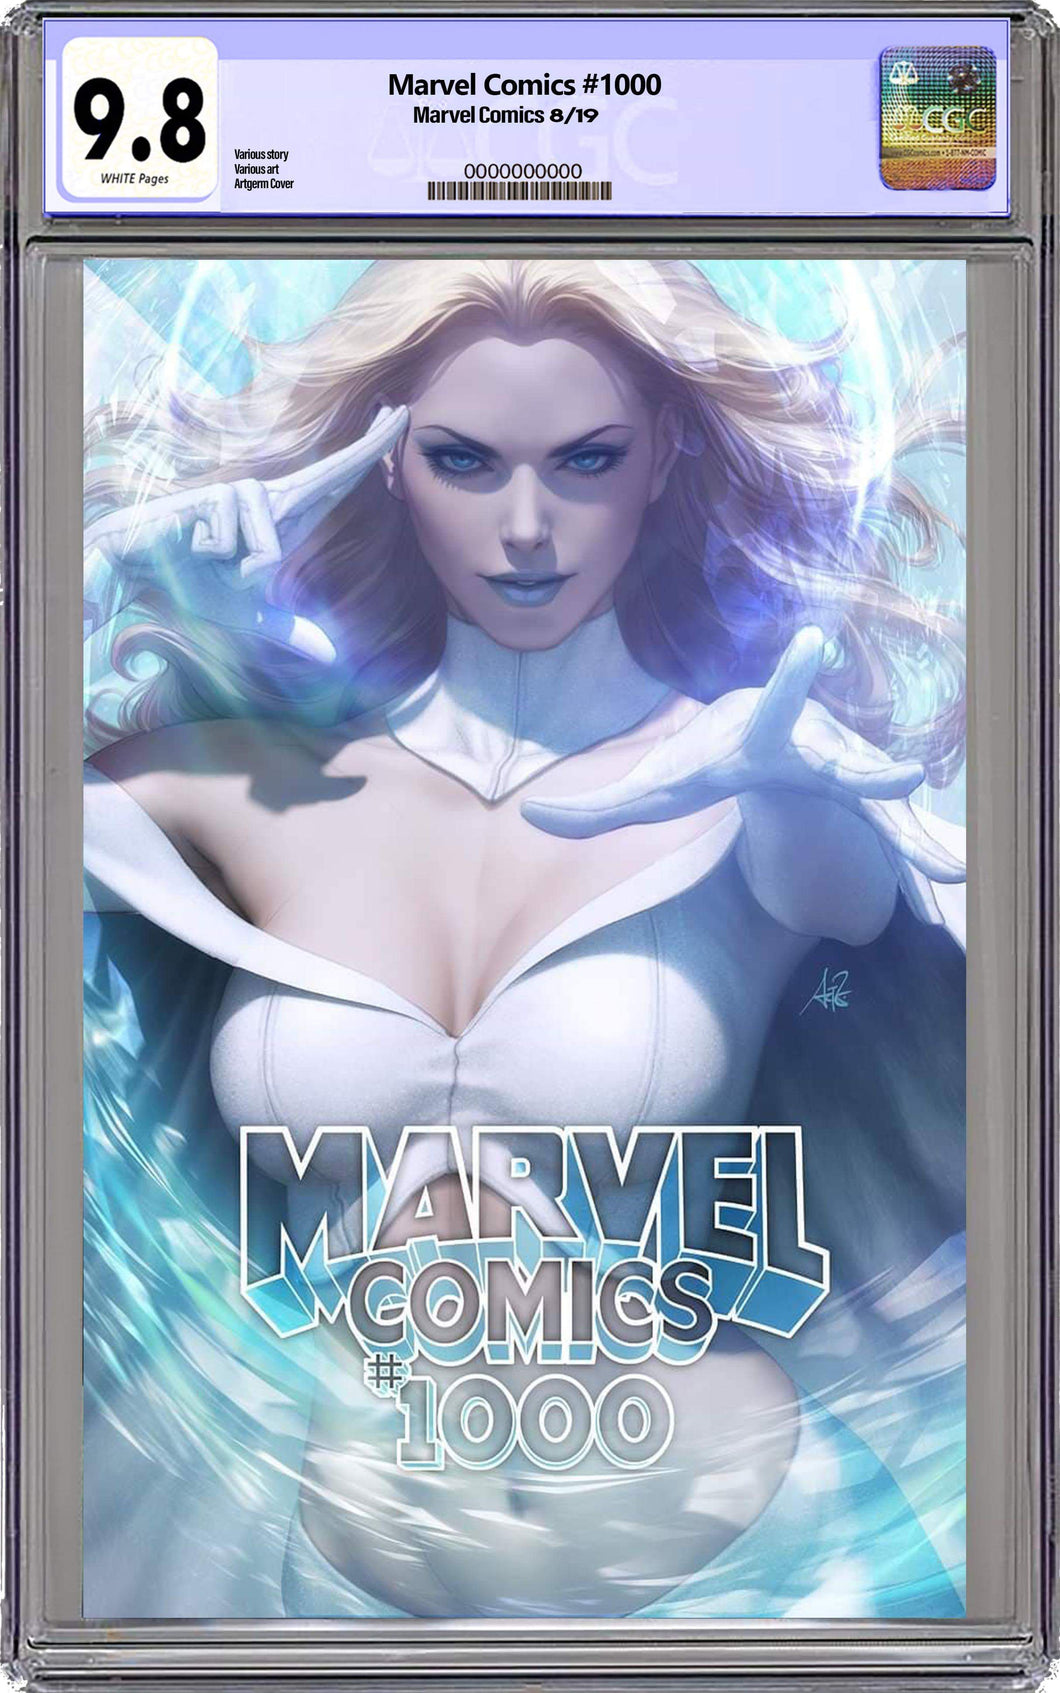 Marvel Comics #1000 Artgerm Collectibles Exclusive Trade Dress Graded 9.8